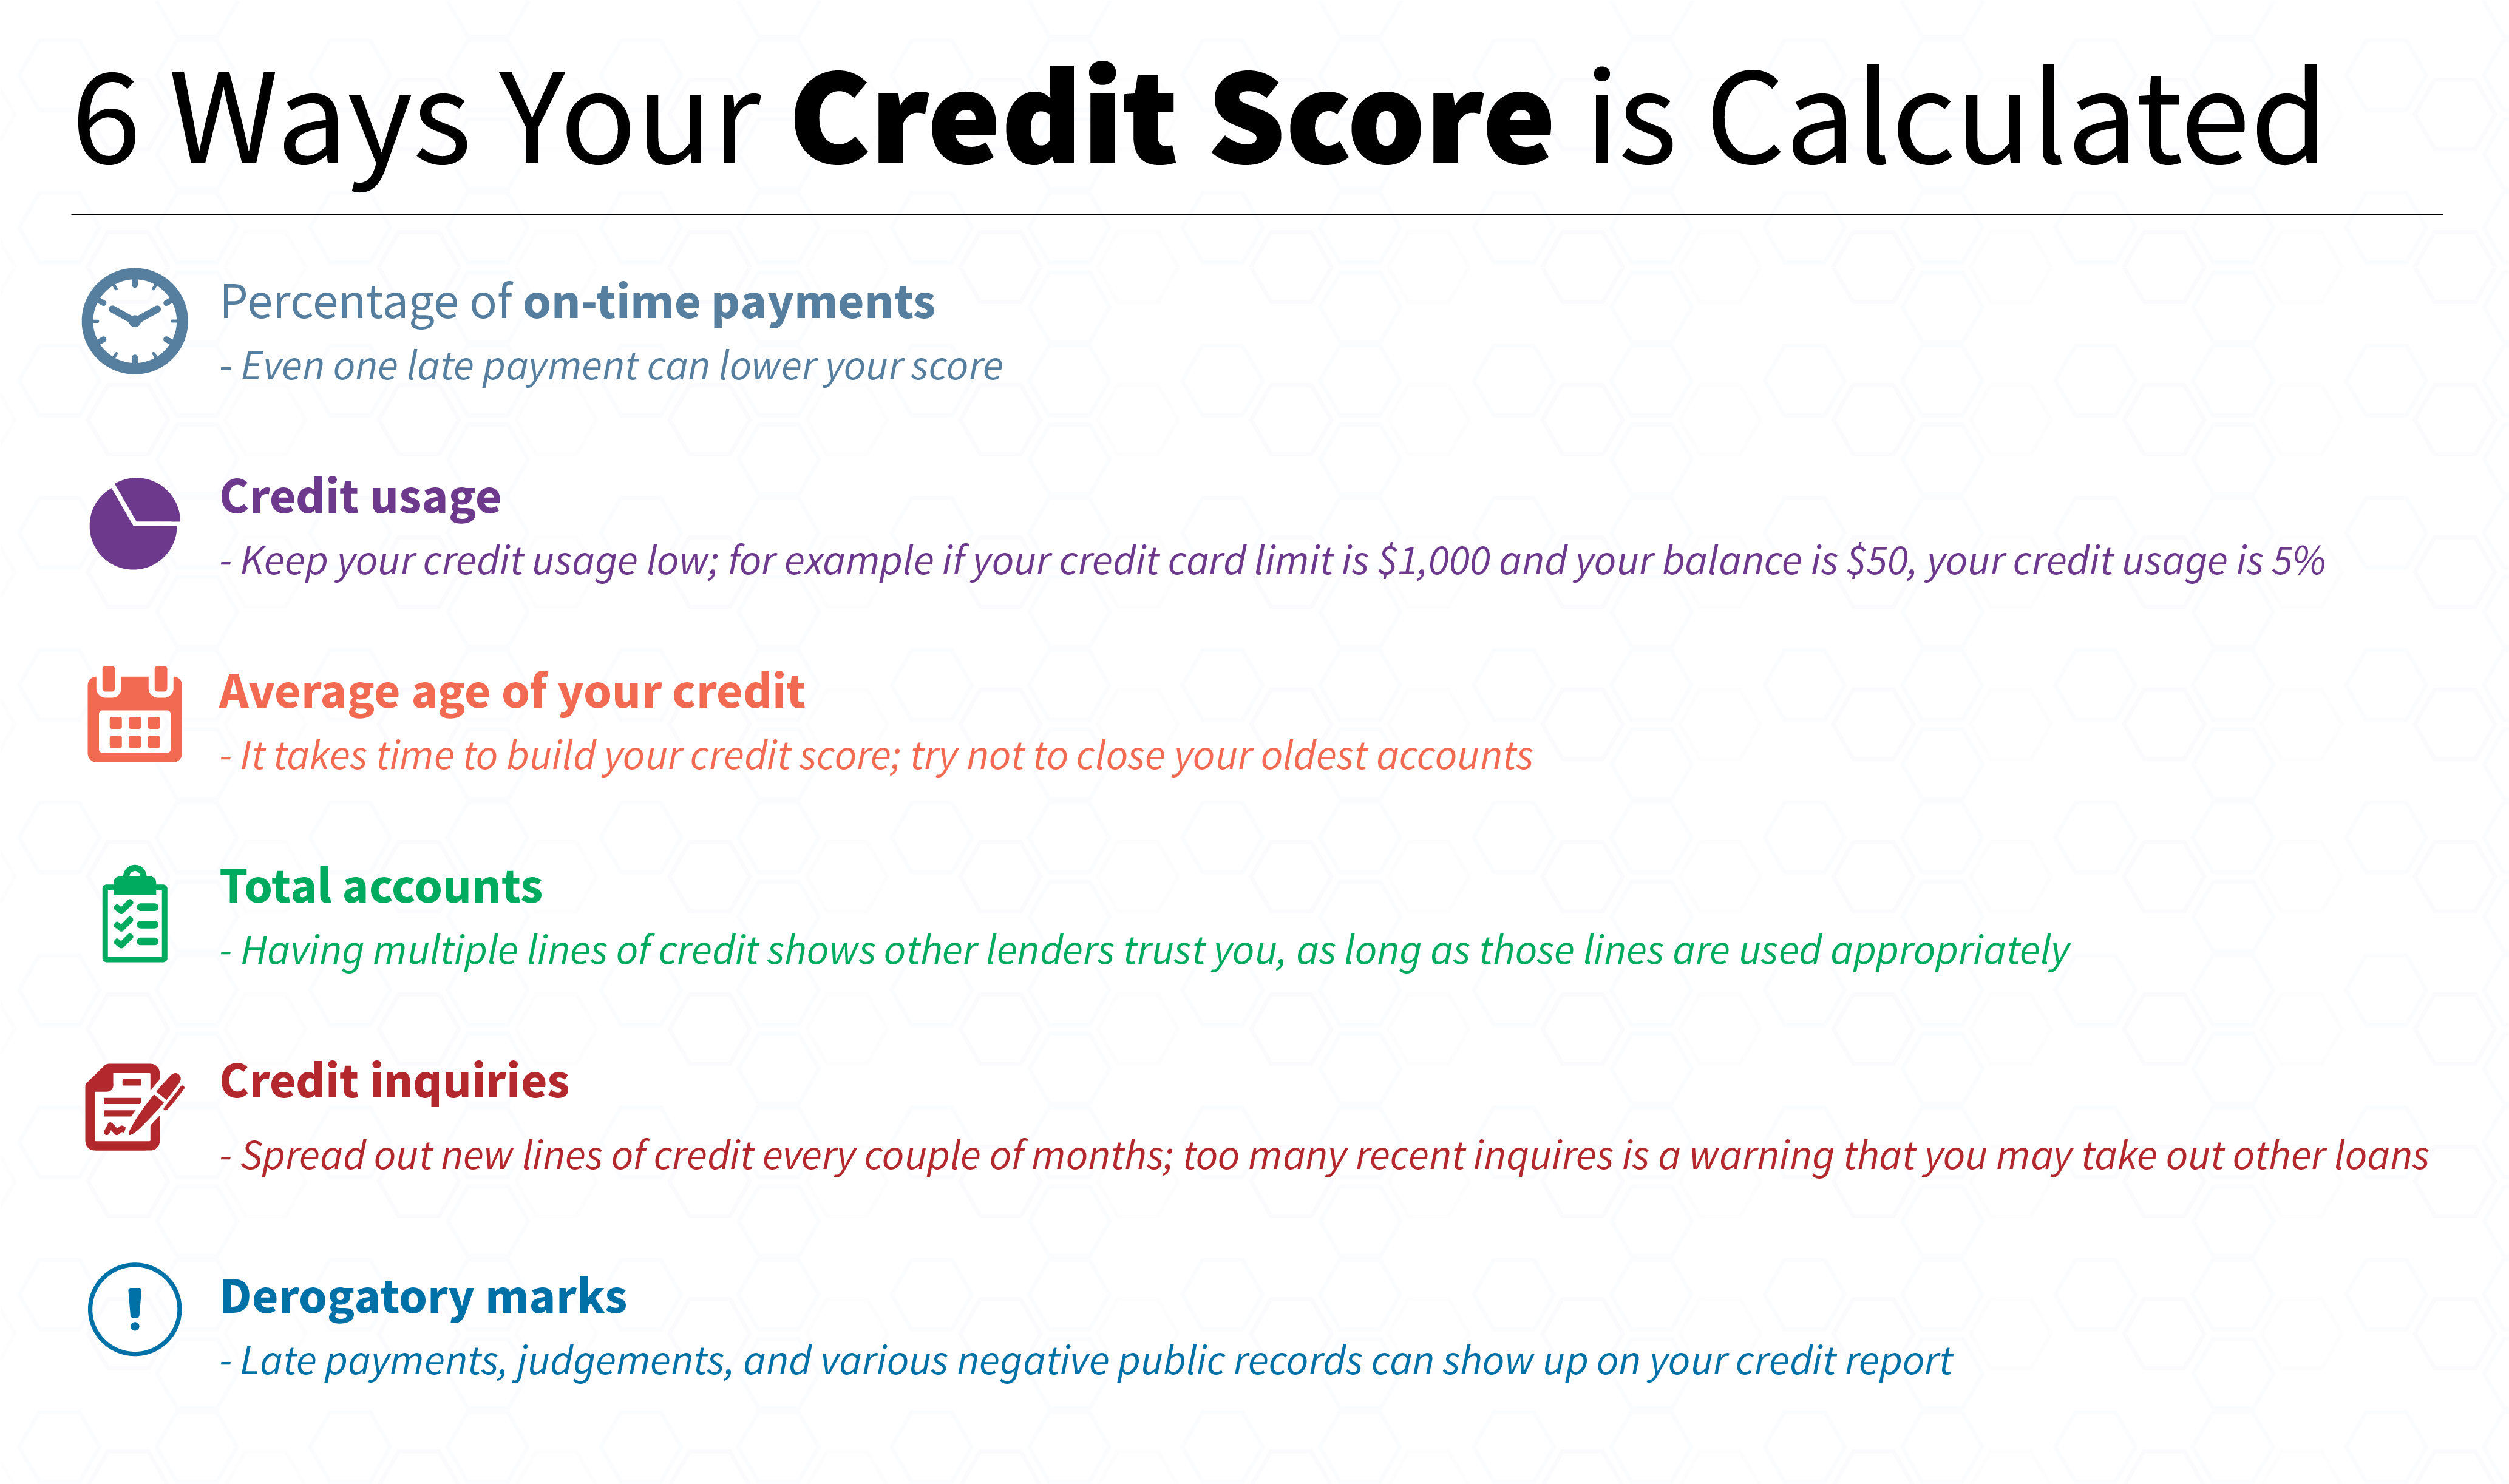 Ways Your Credit Score is Calculated